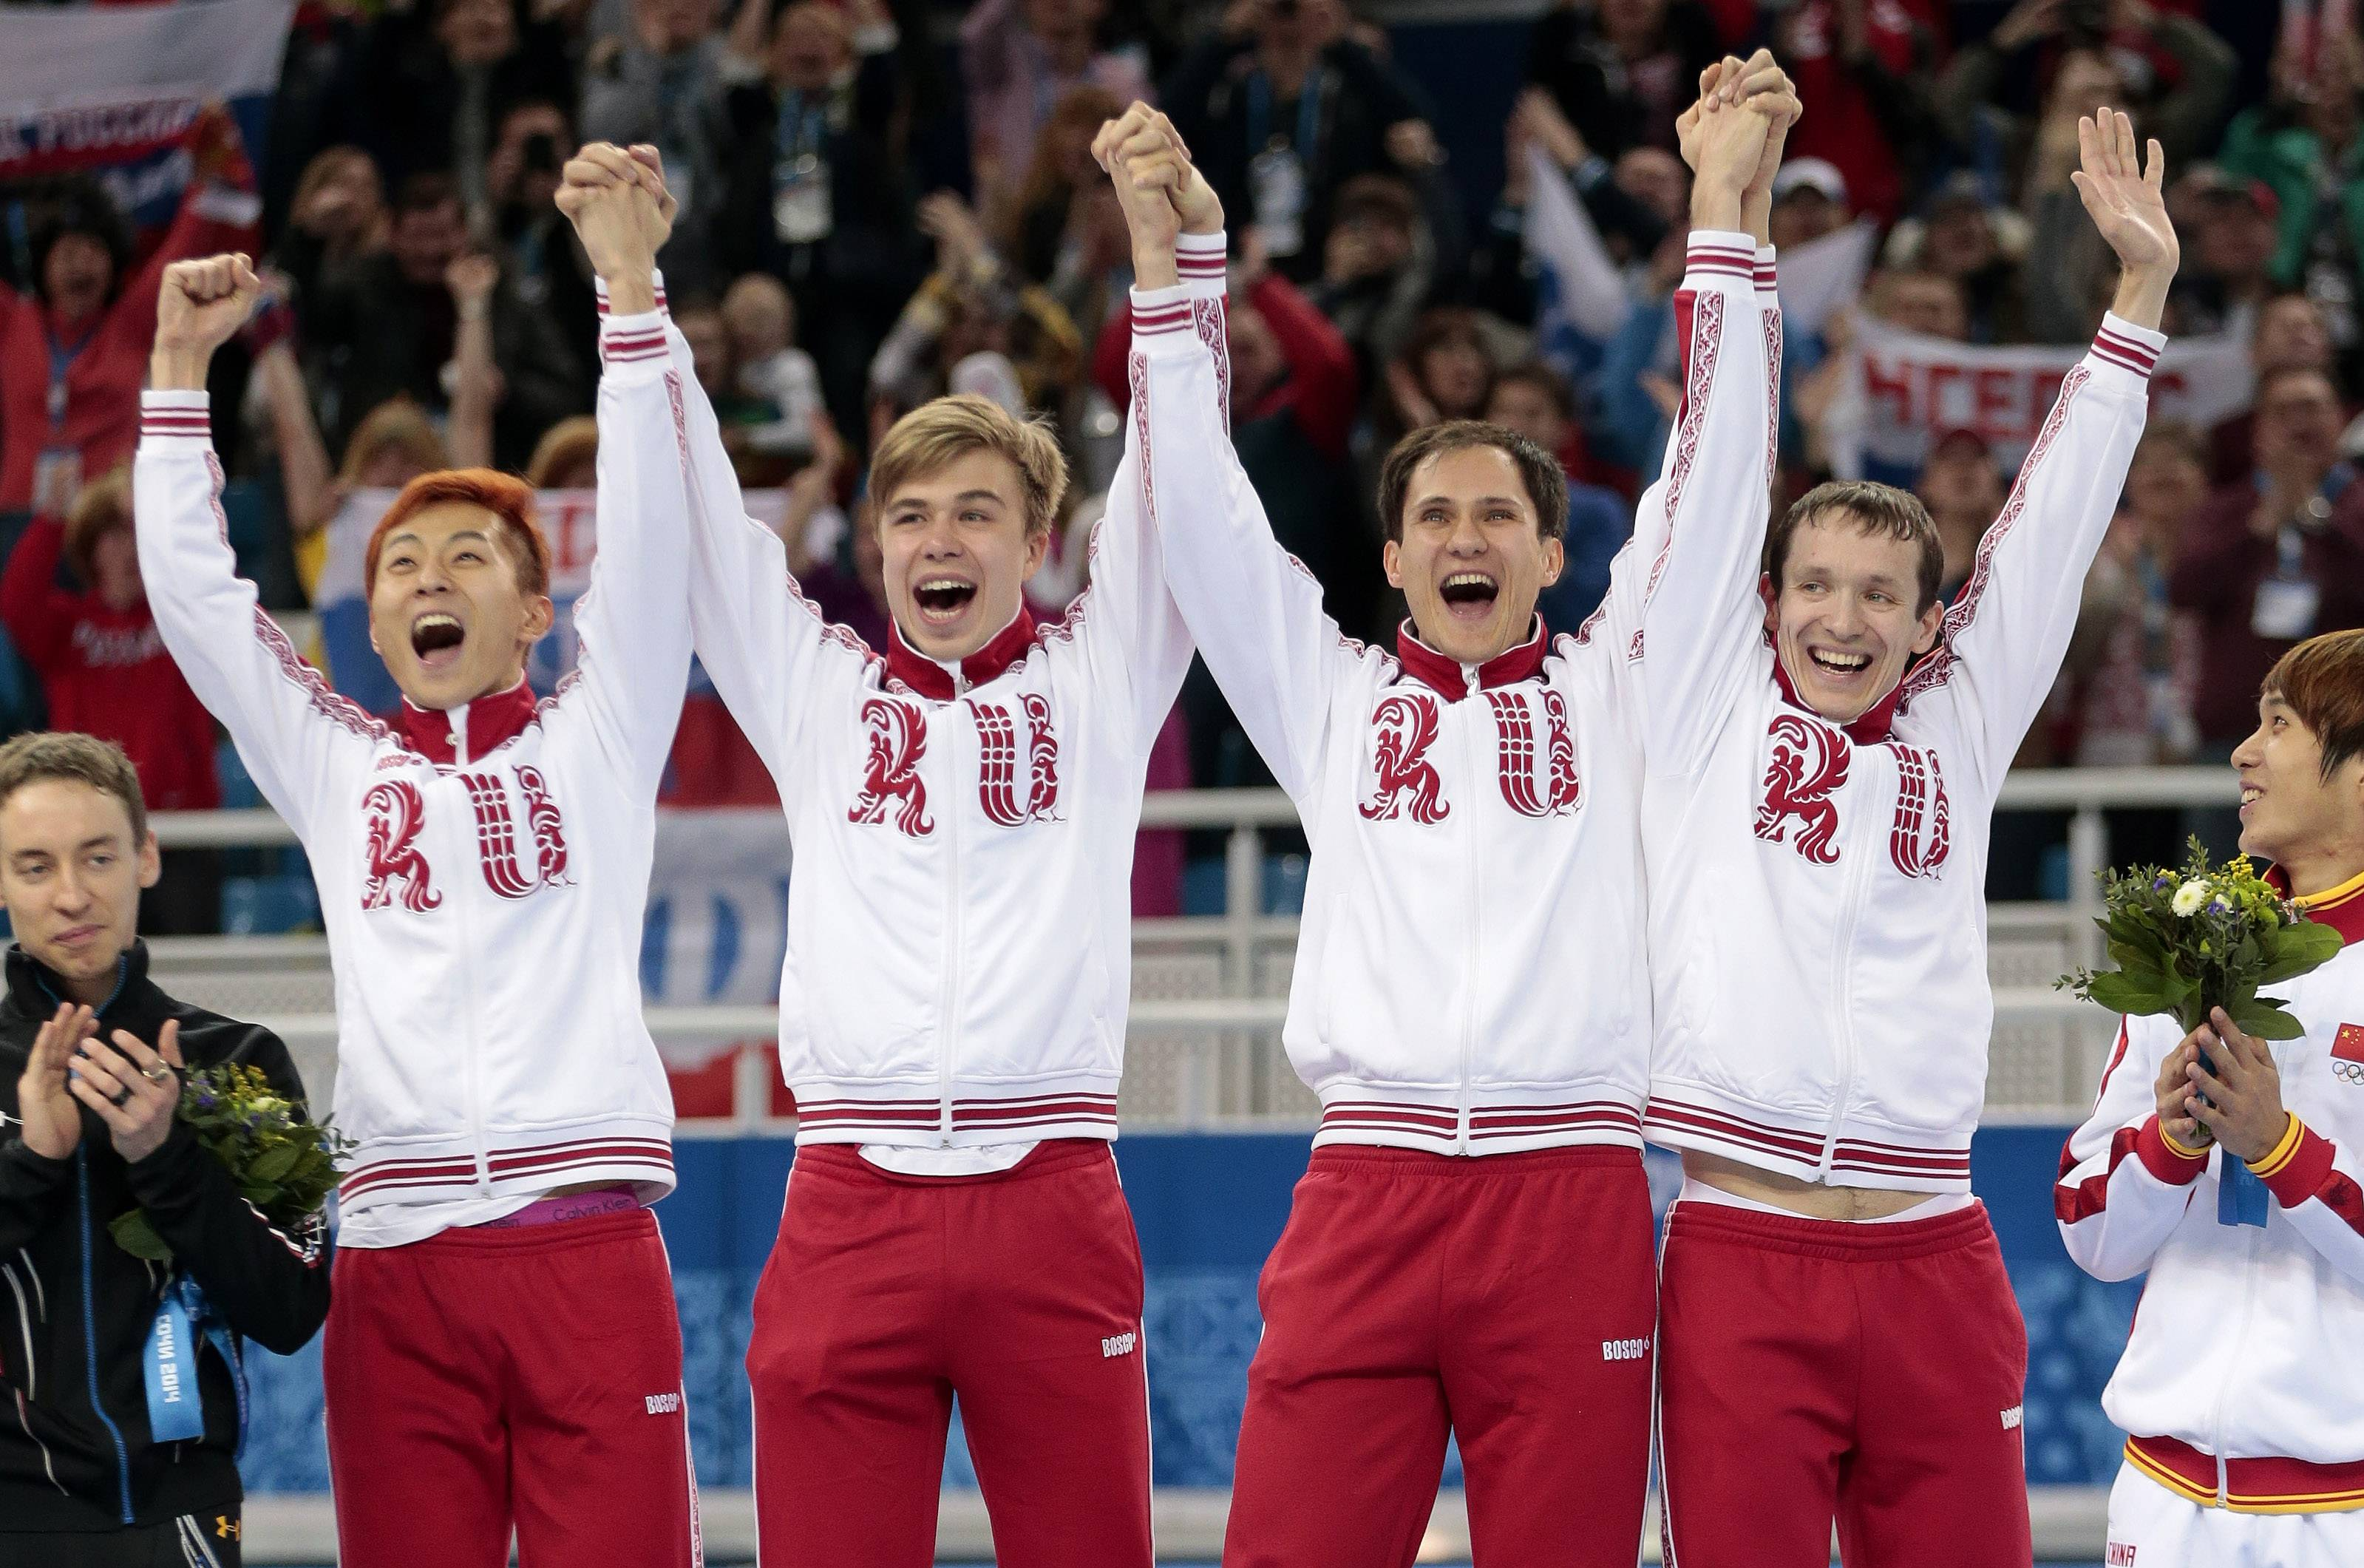 The Russian team celebrates on the podium after they placed first for the men's 5000m short track speedskating relay final.